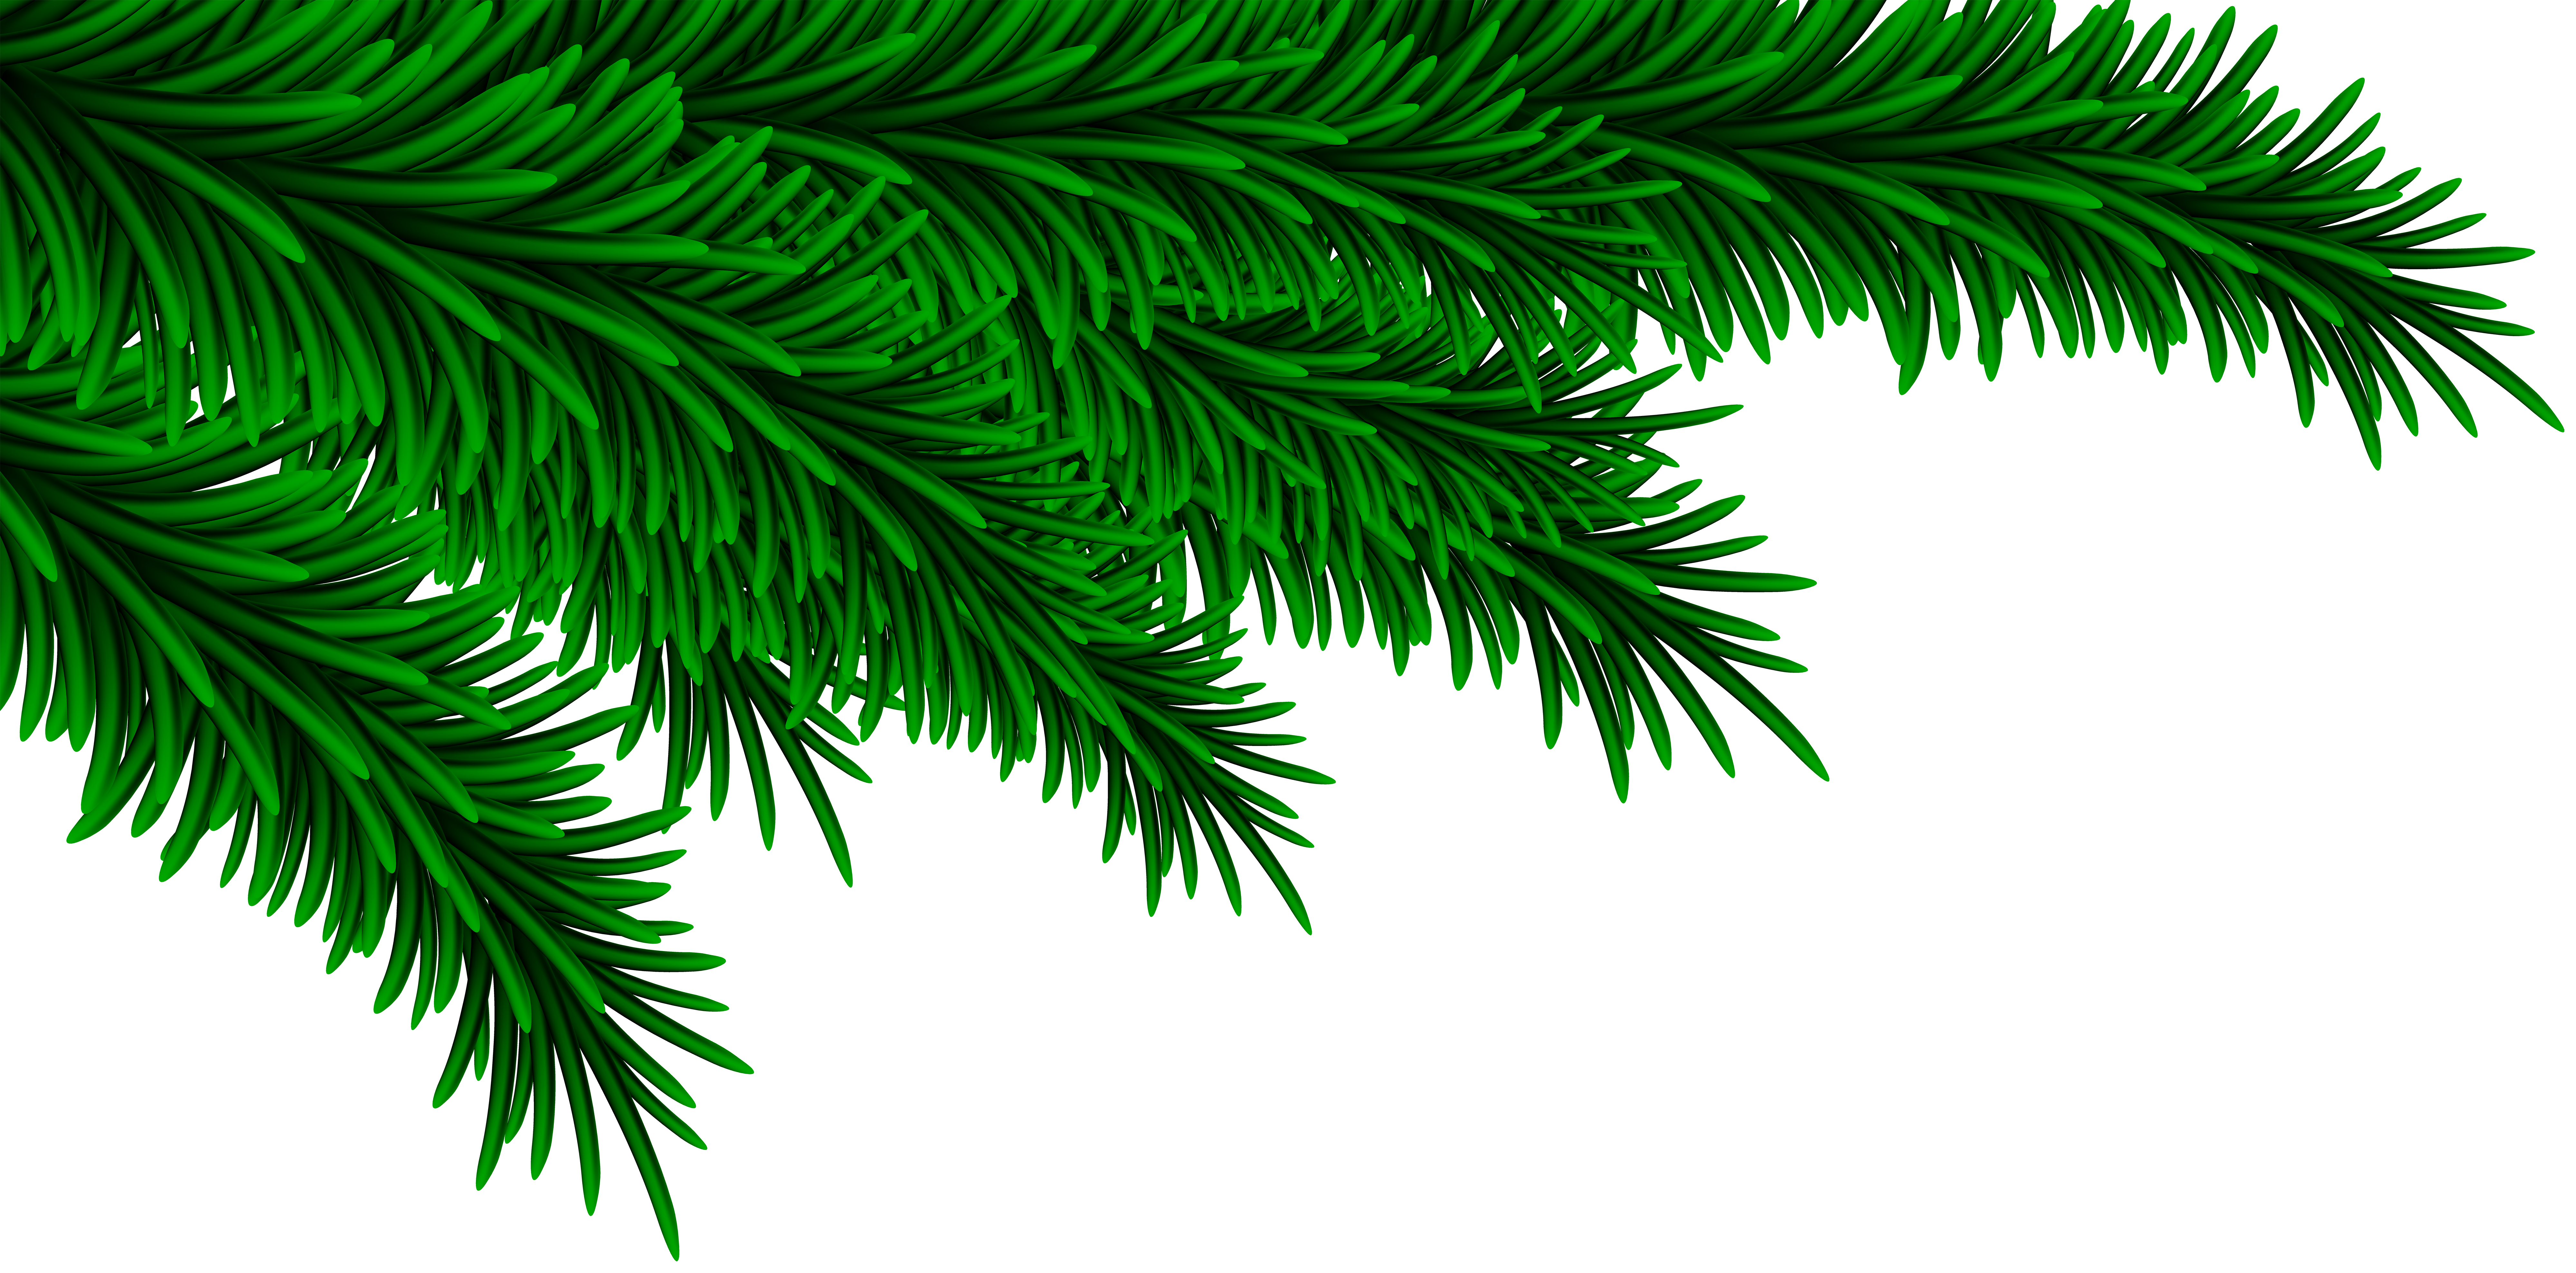 Christmas branches clipart graphic library library Christmas Pine Branches Decorating PNG Clip Art Image | Gallery ... graphic library library